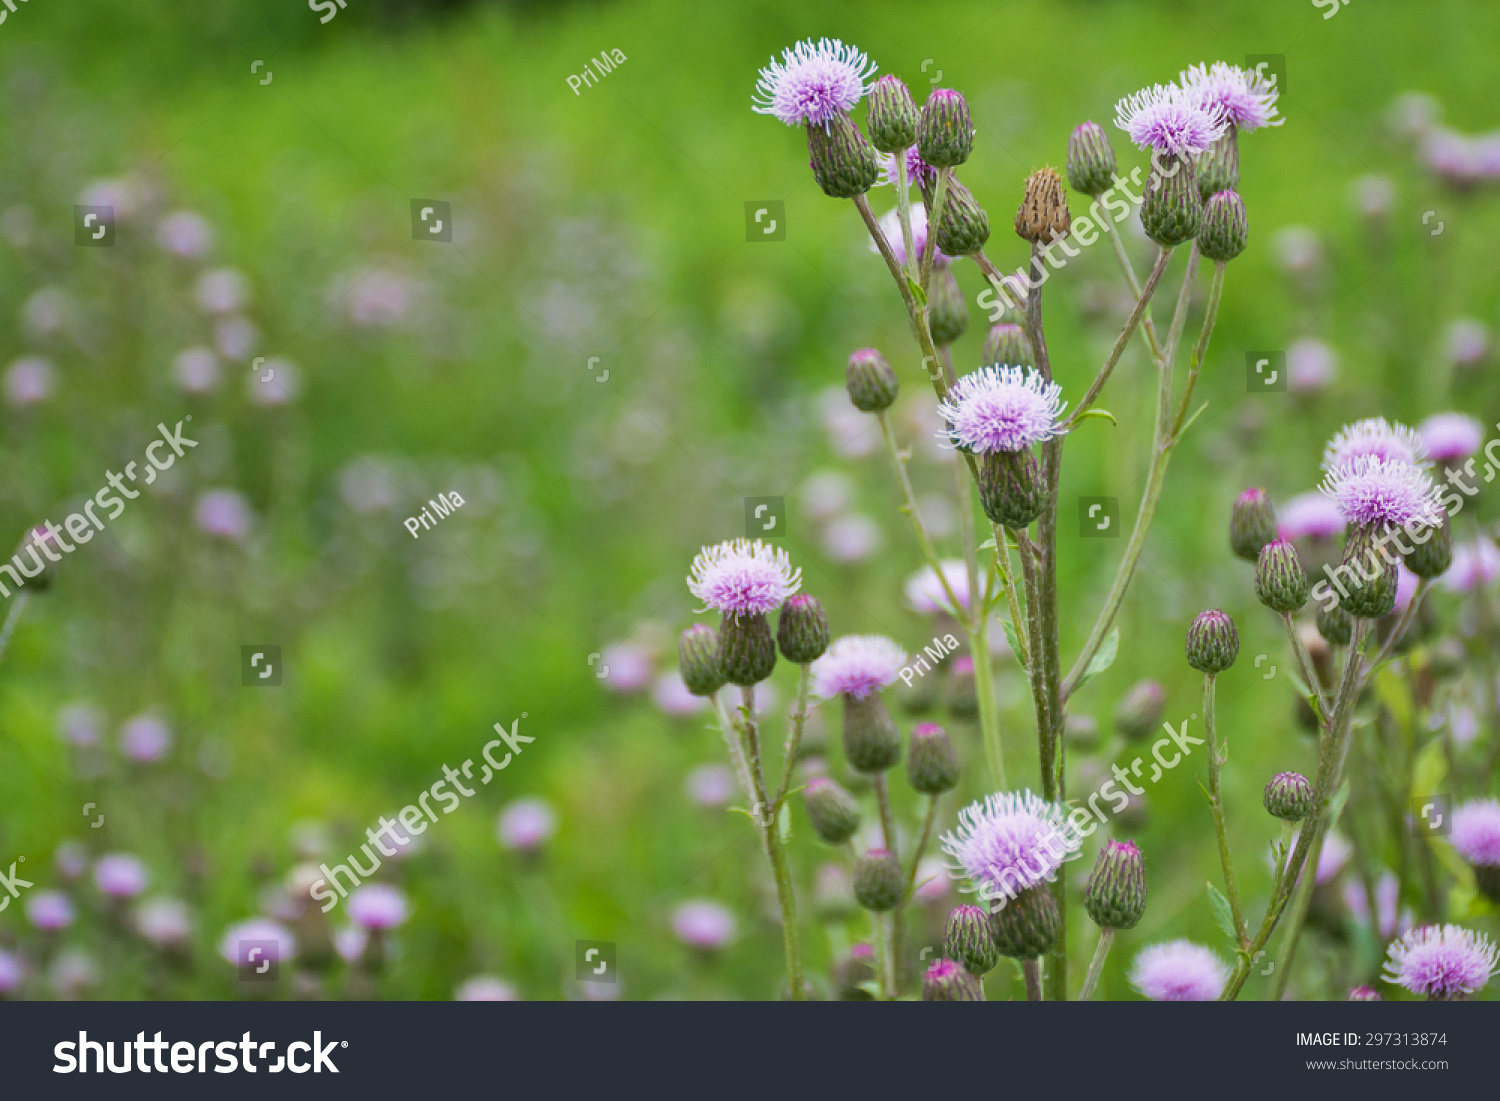 Ornamental Grass With Pink Purple Flowers Nature Background With